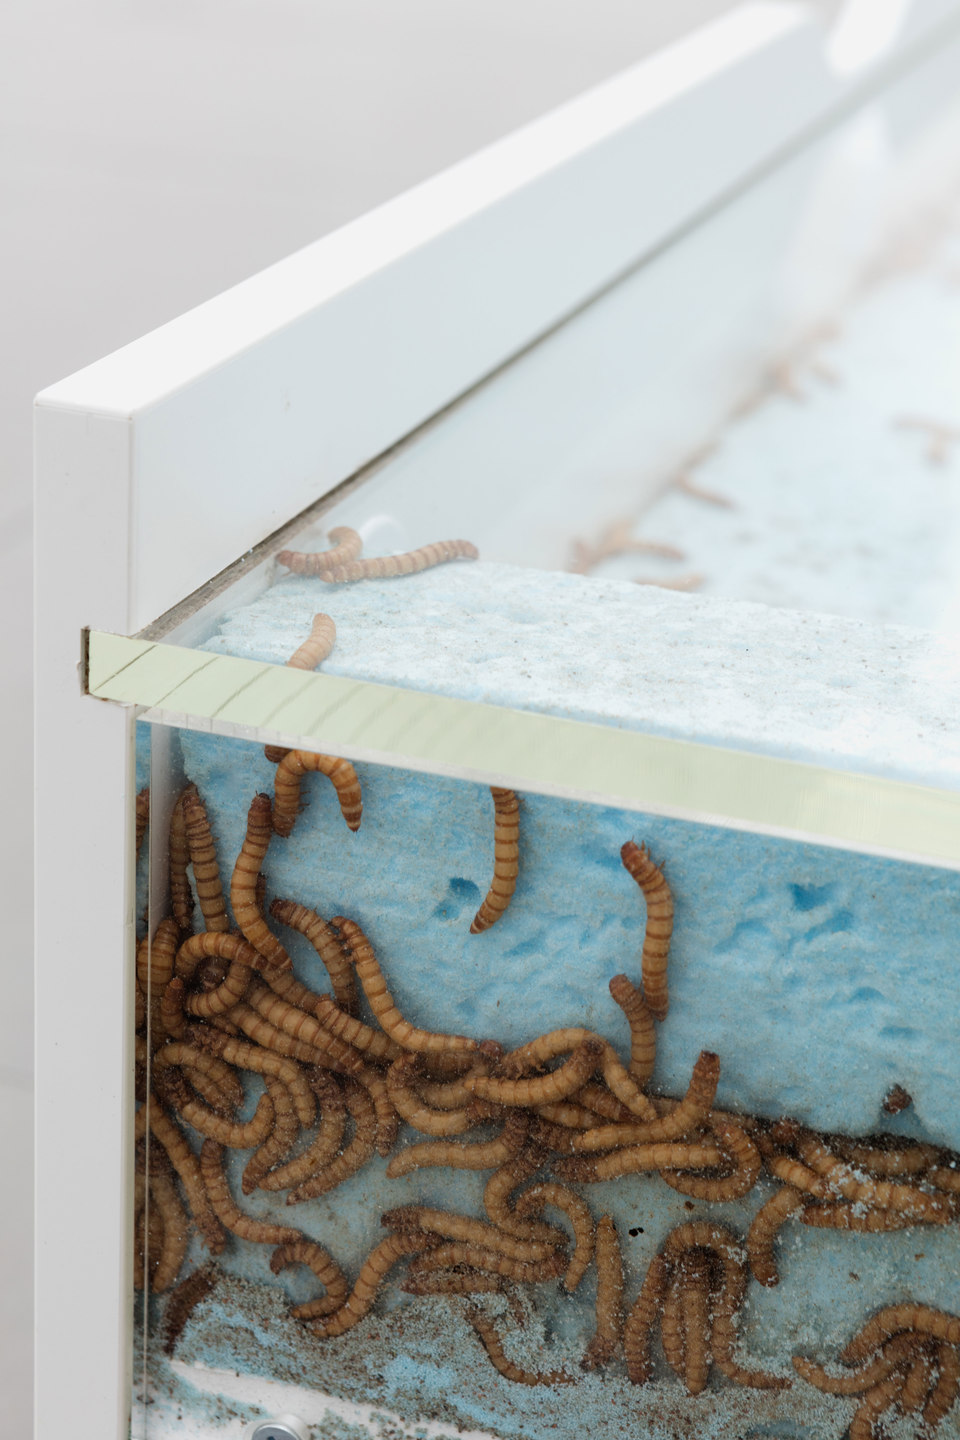 Aude Pariset, GREENHOUSES, 'Promession® #1' [detail], Flaxa underbed, perspex, wheels, Styrofoam, giant mealworms, vents, MDF, 90 x 202 x 31cm, 2016, Cell Project Space